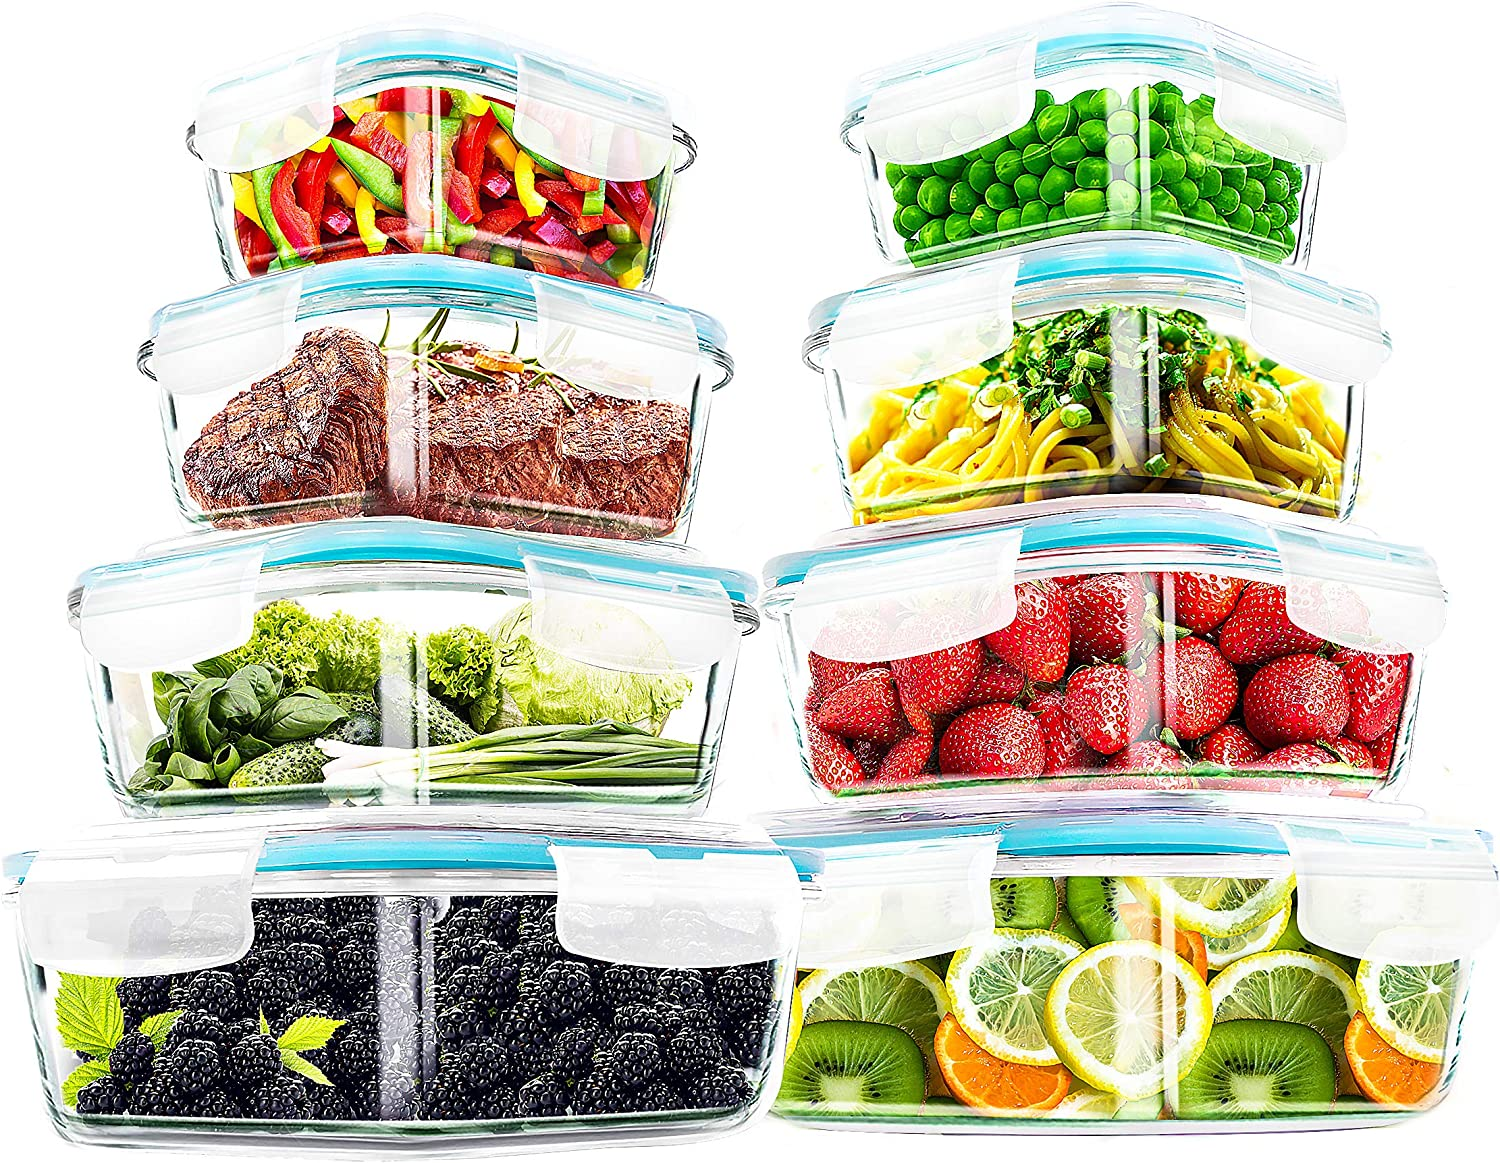 Utopia Kitchen- 16 Piece Glass Food Storage Container (8 containers, 8 transparent lids)- Stackable & Leak-proof- BPA Free locking lids- Easy to store food and carry on the go- From Oven to the Table